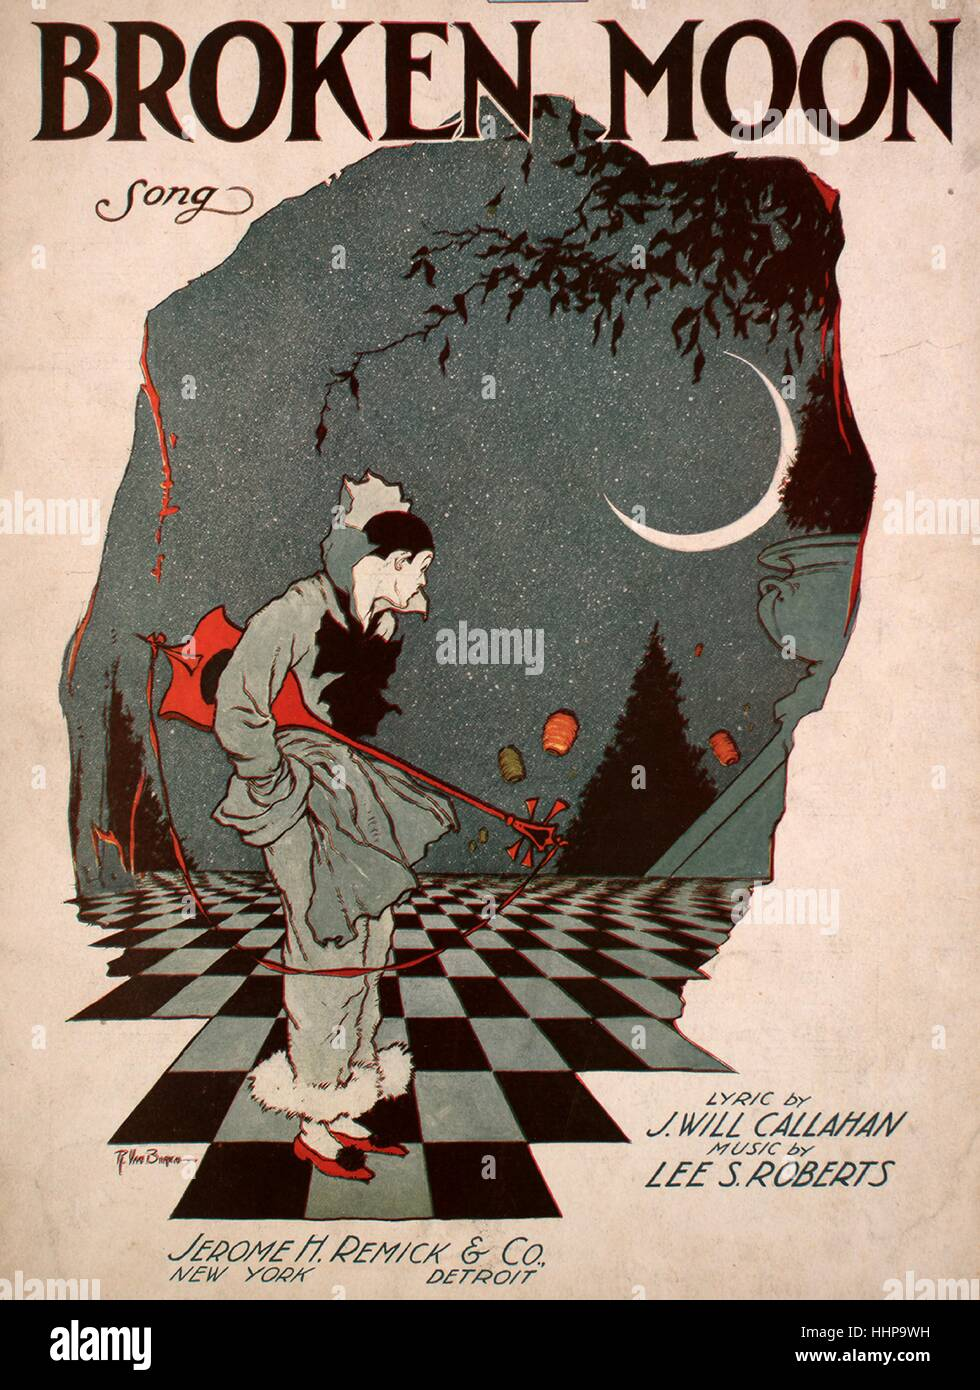 Sheet music cover image of the song Broken Moon Song